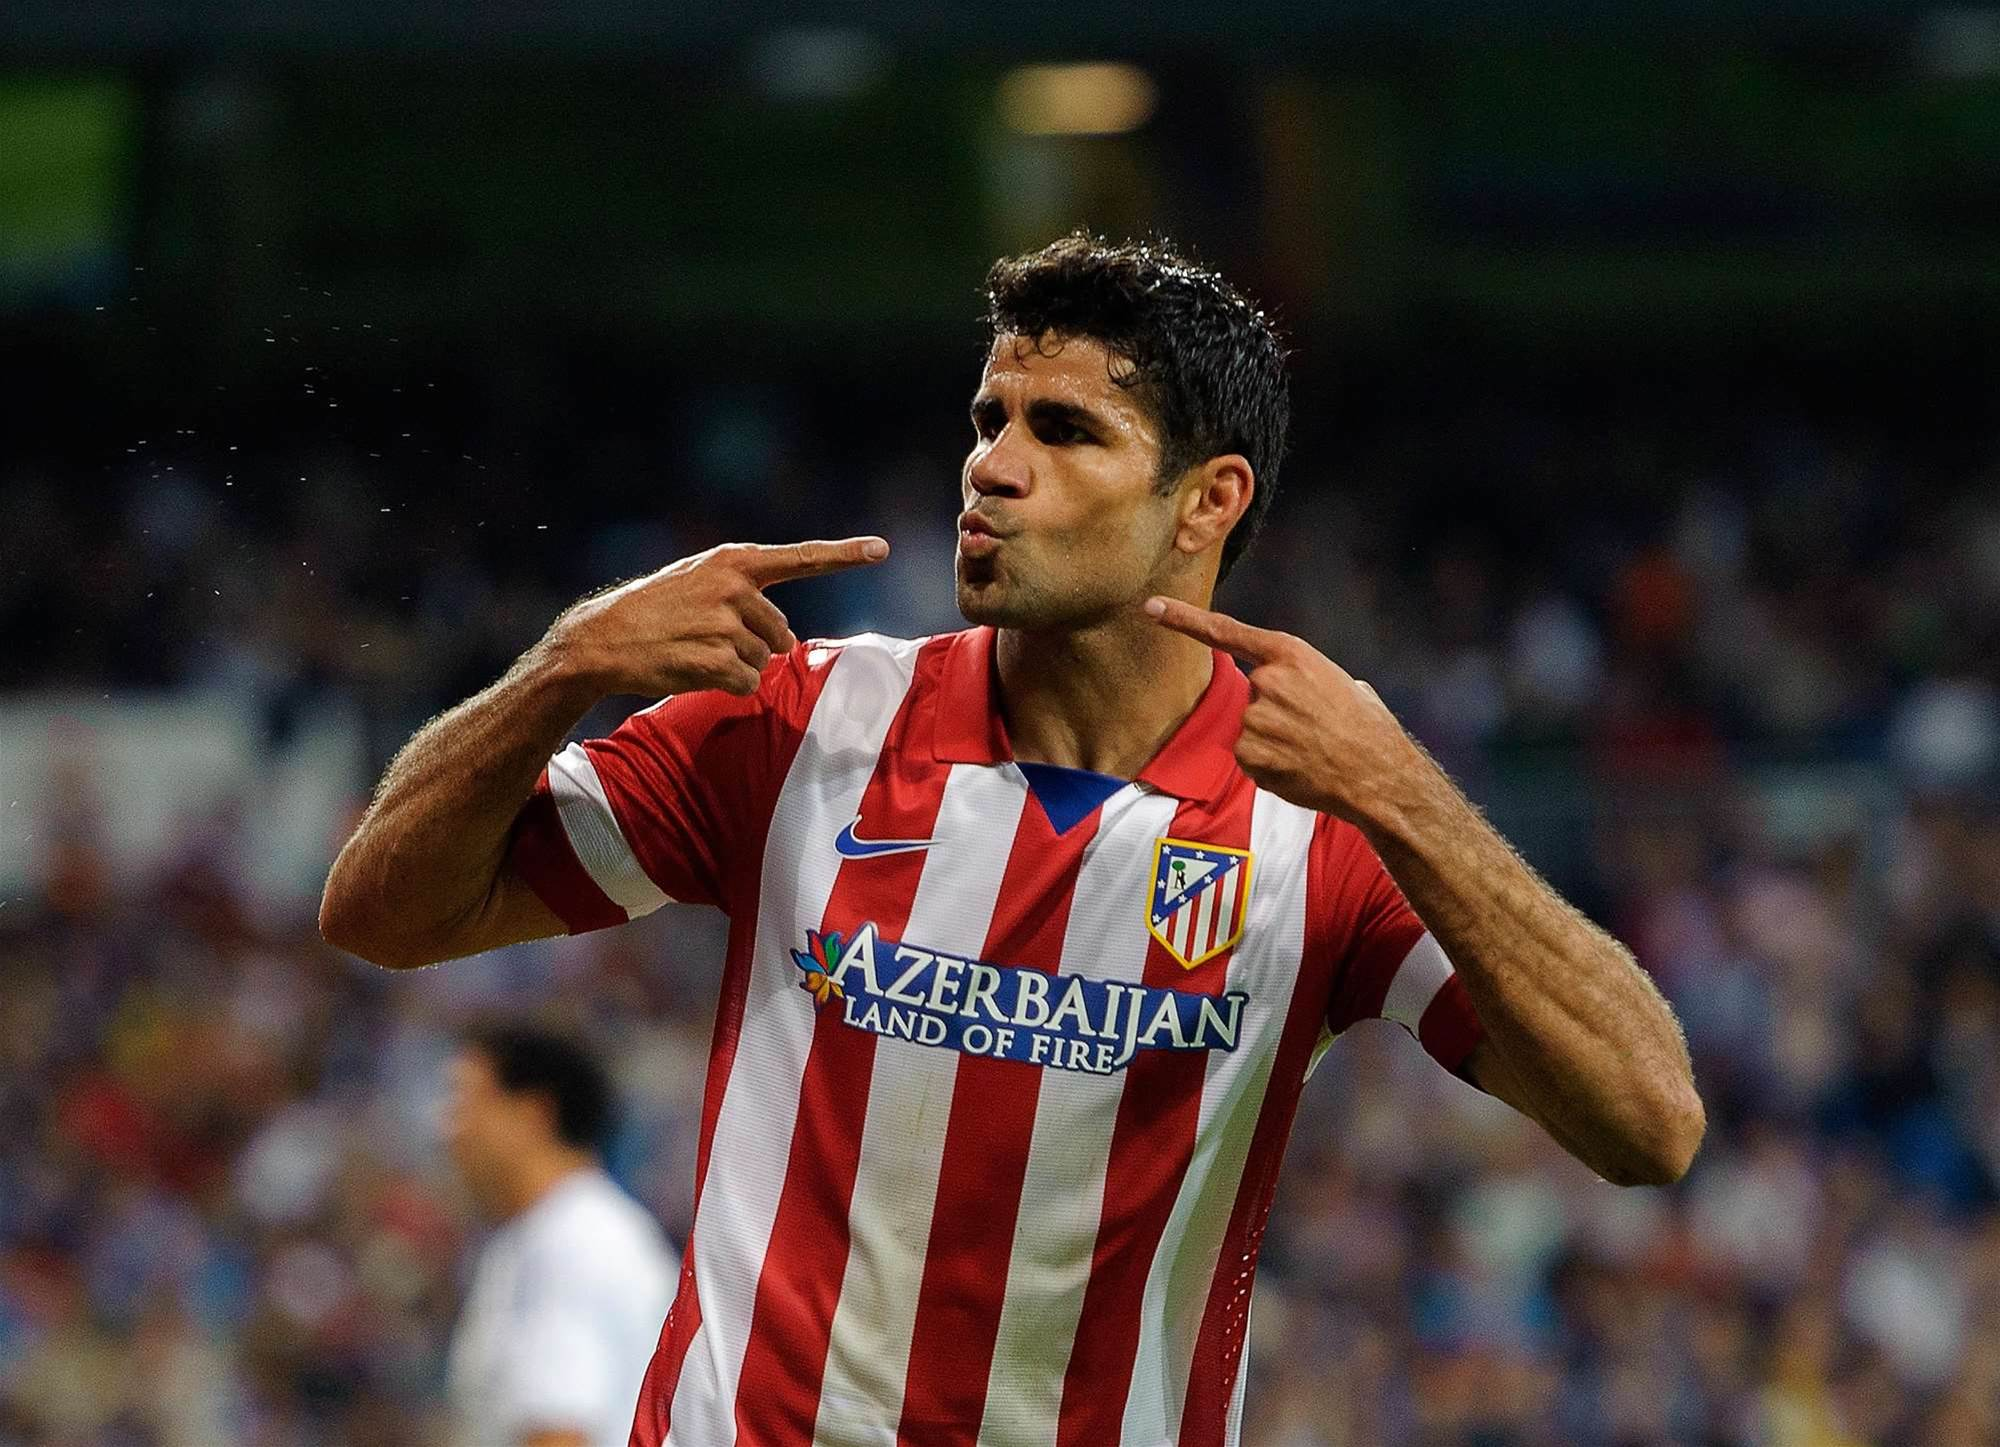 Brazil happy to let Costa play for Spain